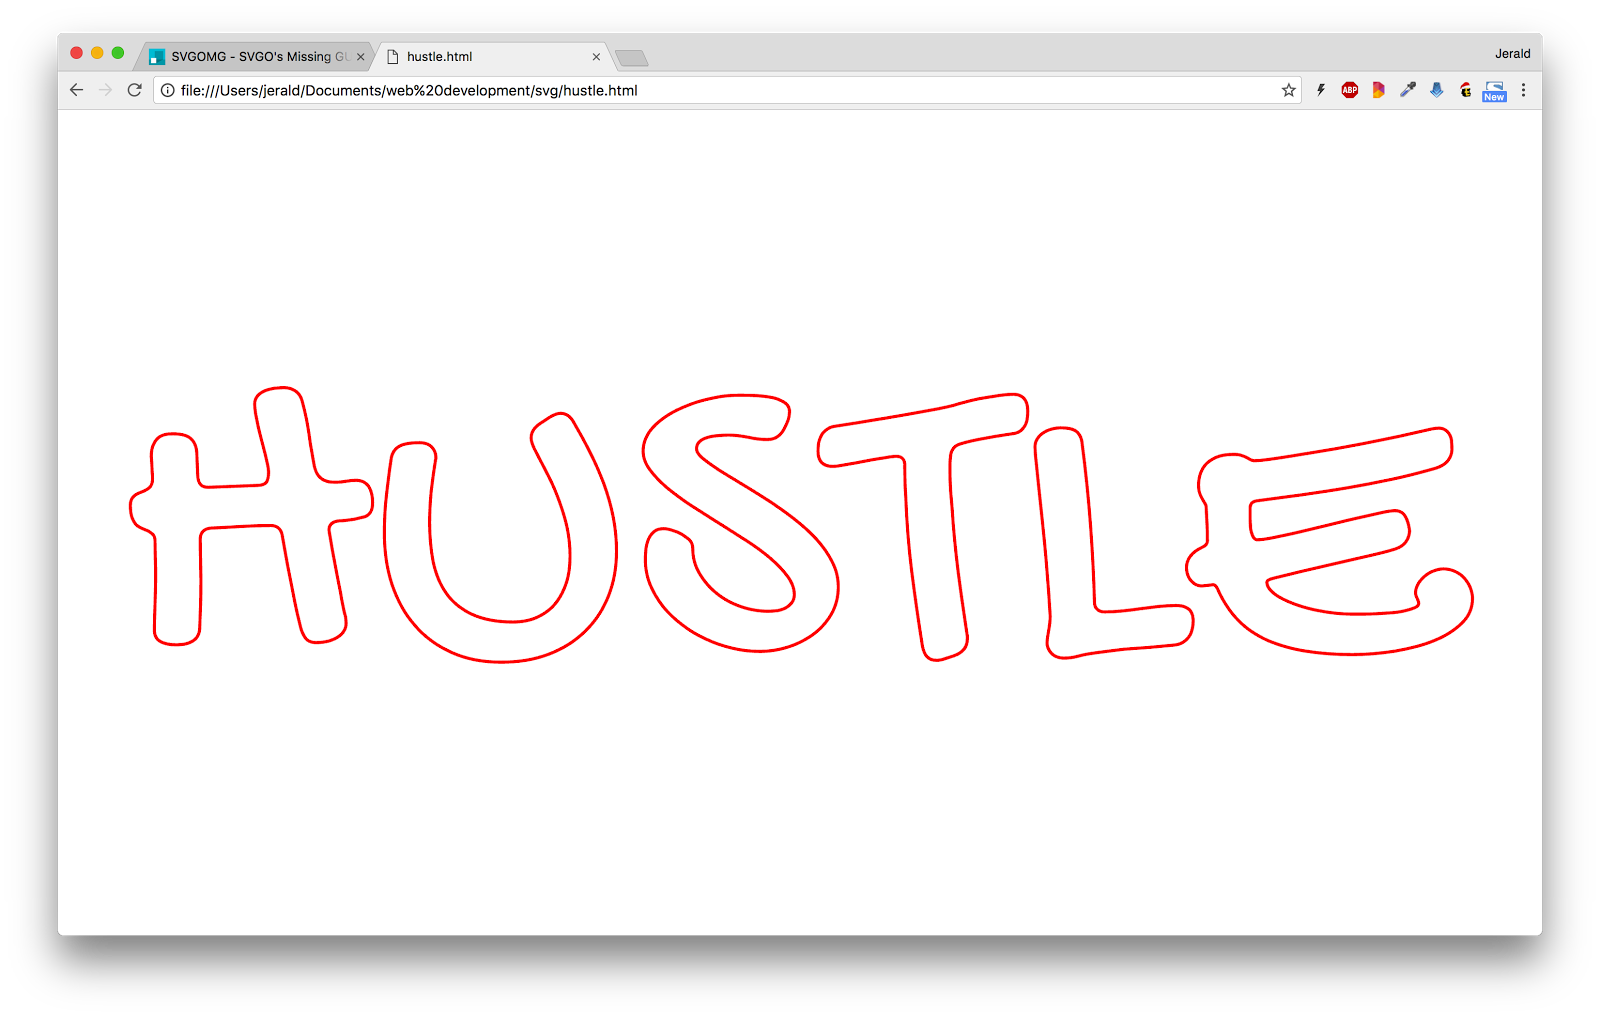 The Ultimate Guide to Animating Drawn Text in HTML with CSS